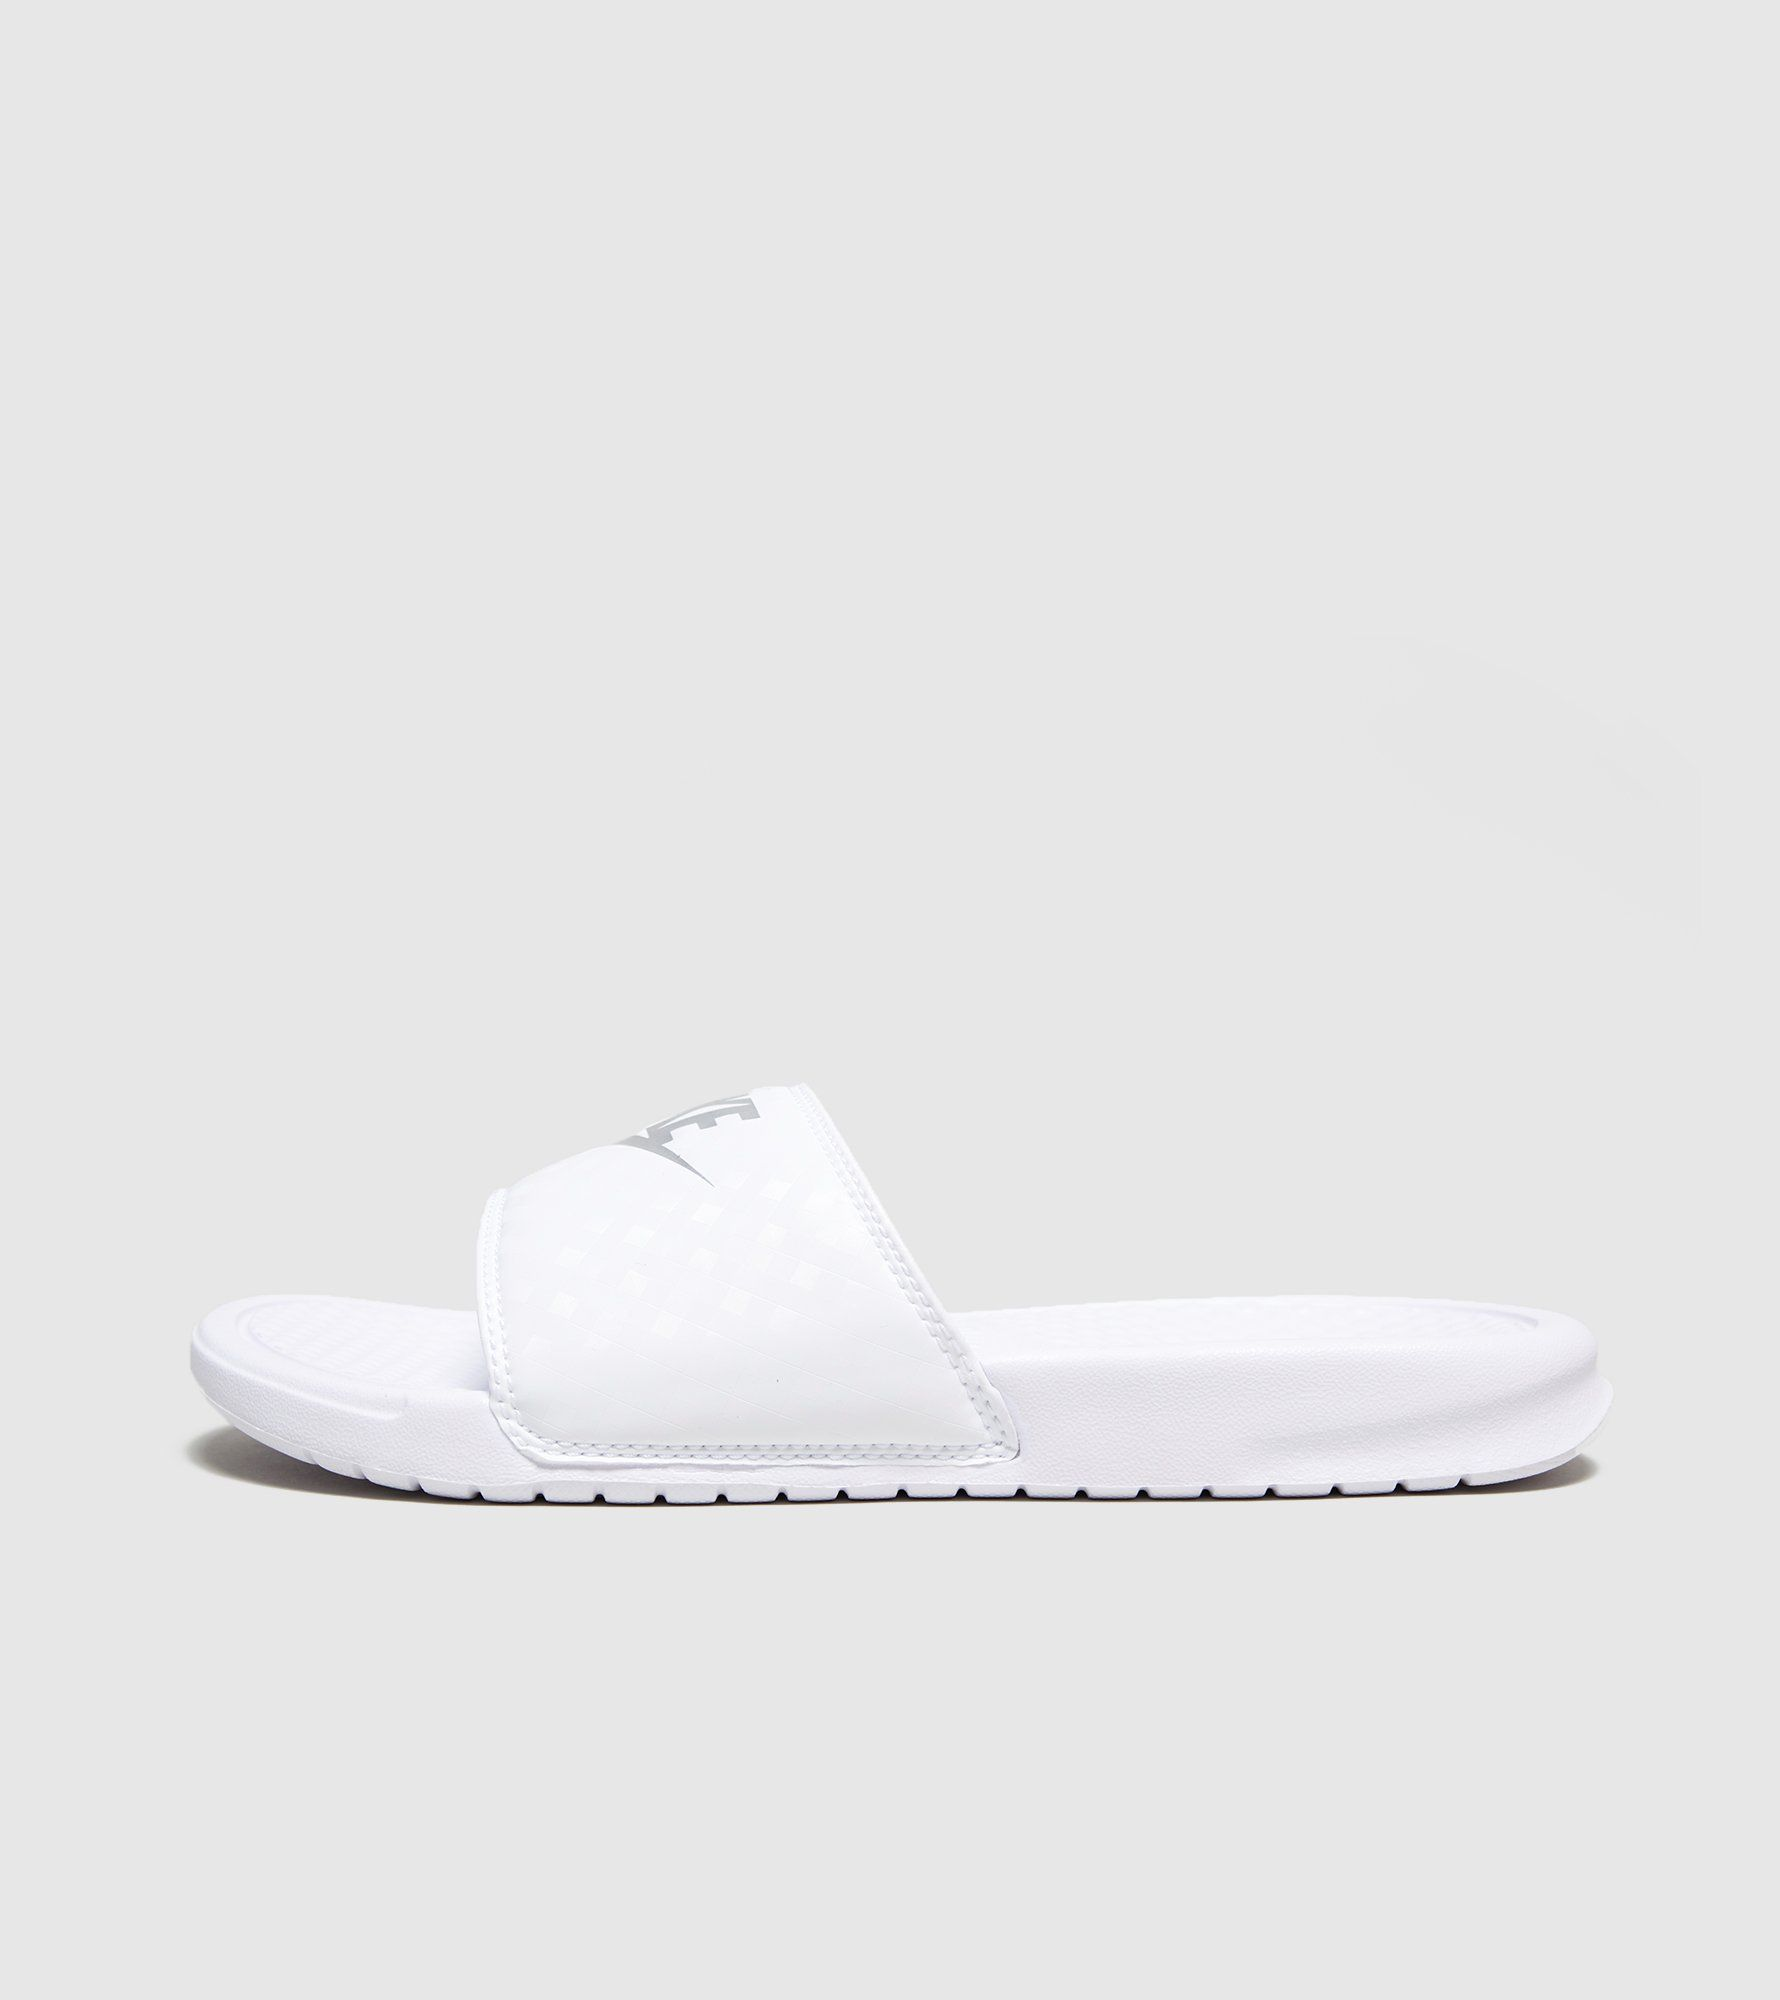 6411cafe085 Nike Benassi Just Do It Slides Women s